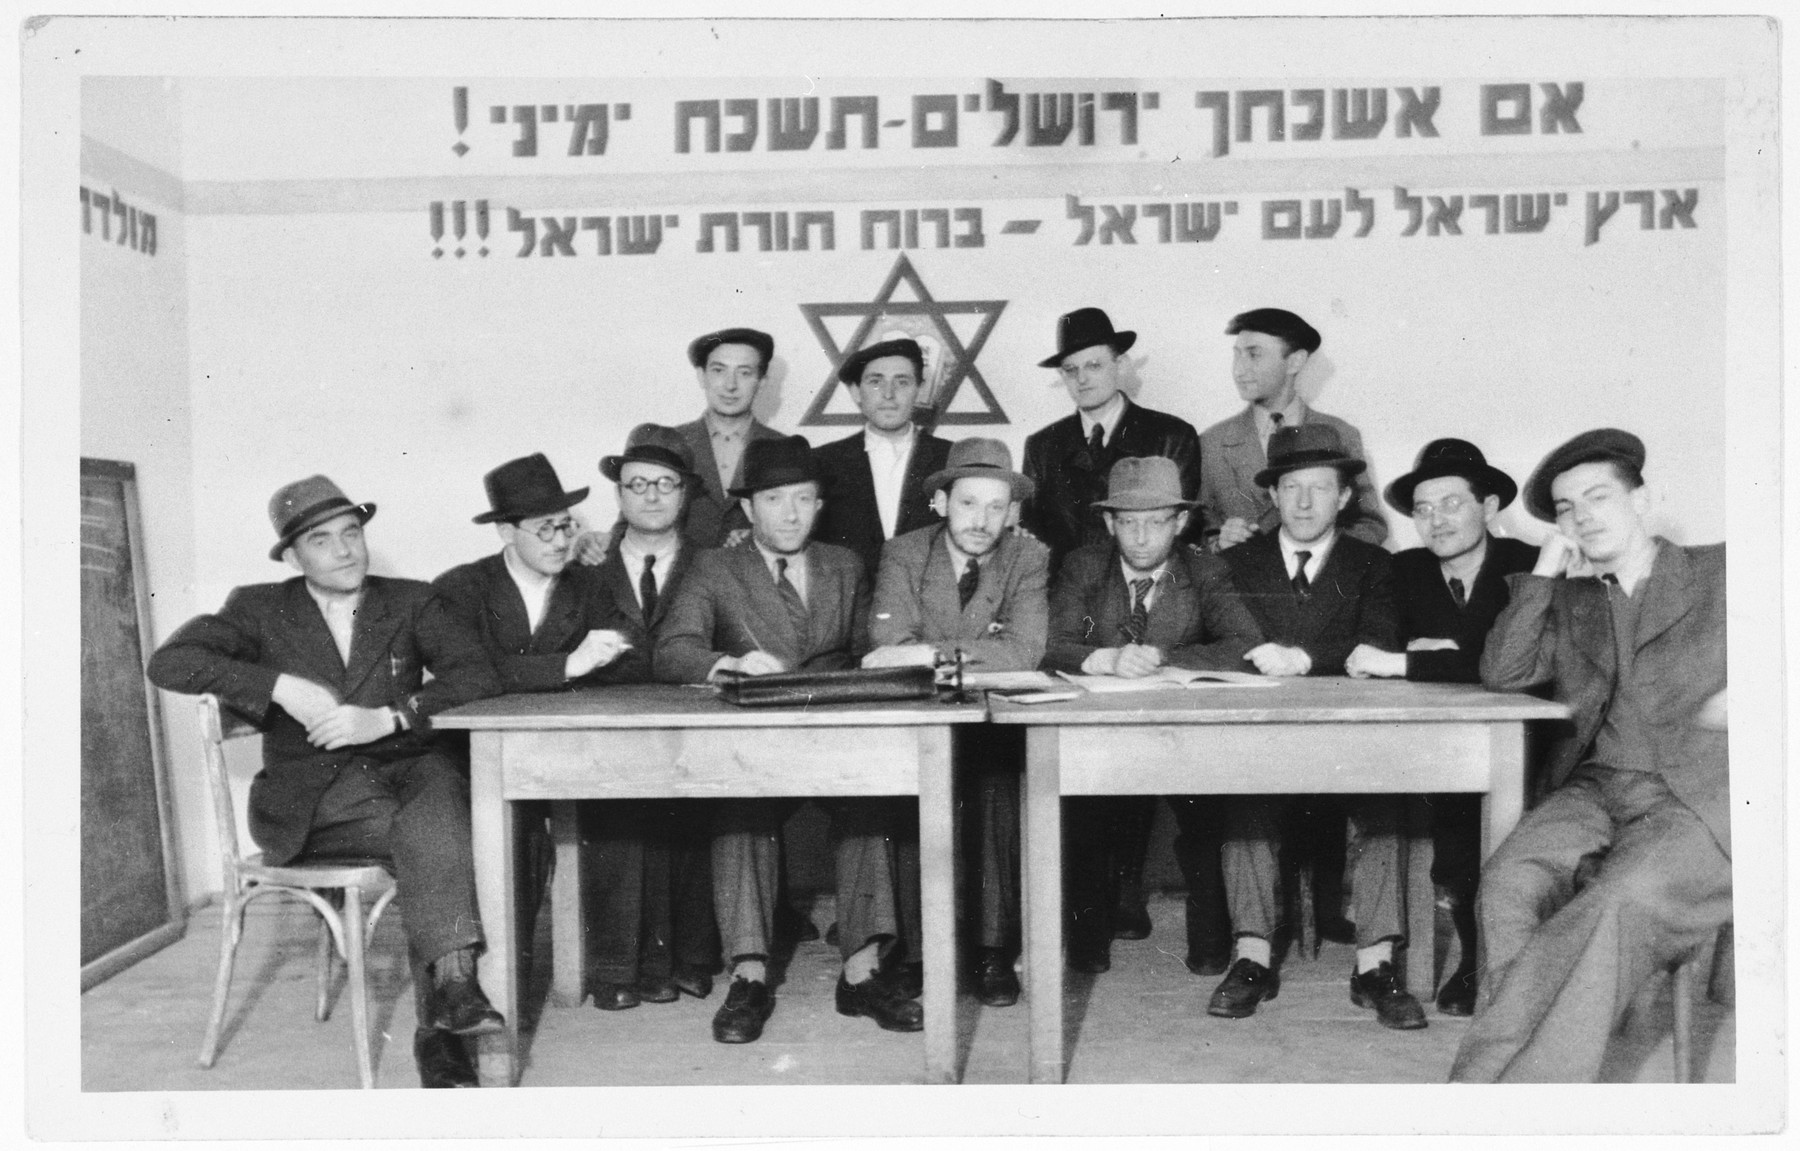 """Meeting of religious Zionists in the Zeilsheim displaced persons' camp.  The signs on the wall read, """"If I forget thee O Jerusalem, may my right arm be forgotten"""" and """"The land of Israel for the people of Israel""""."""